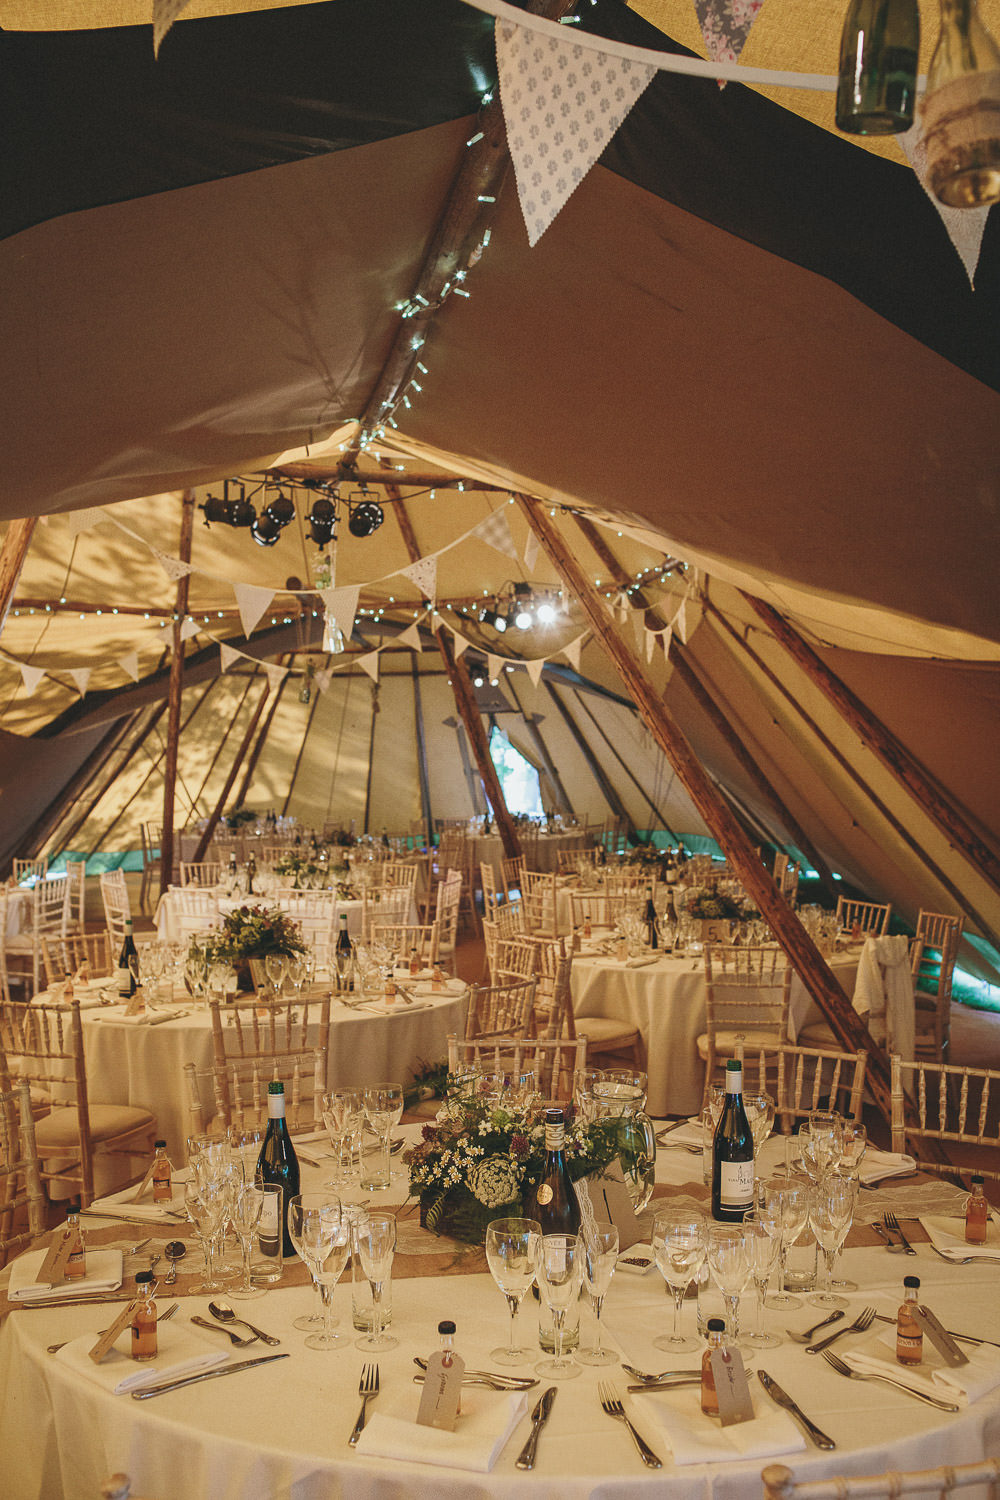 Country Wedding Decorations 78 Epic Image by uca